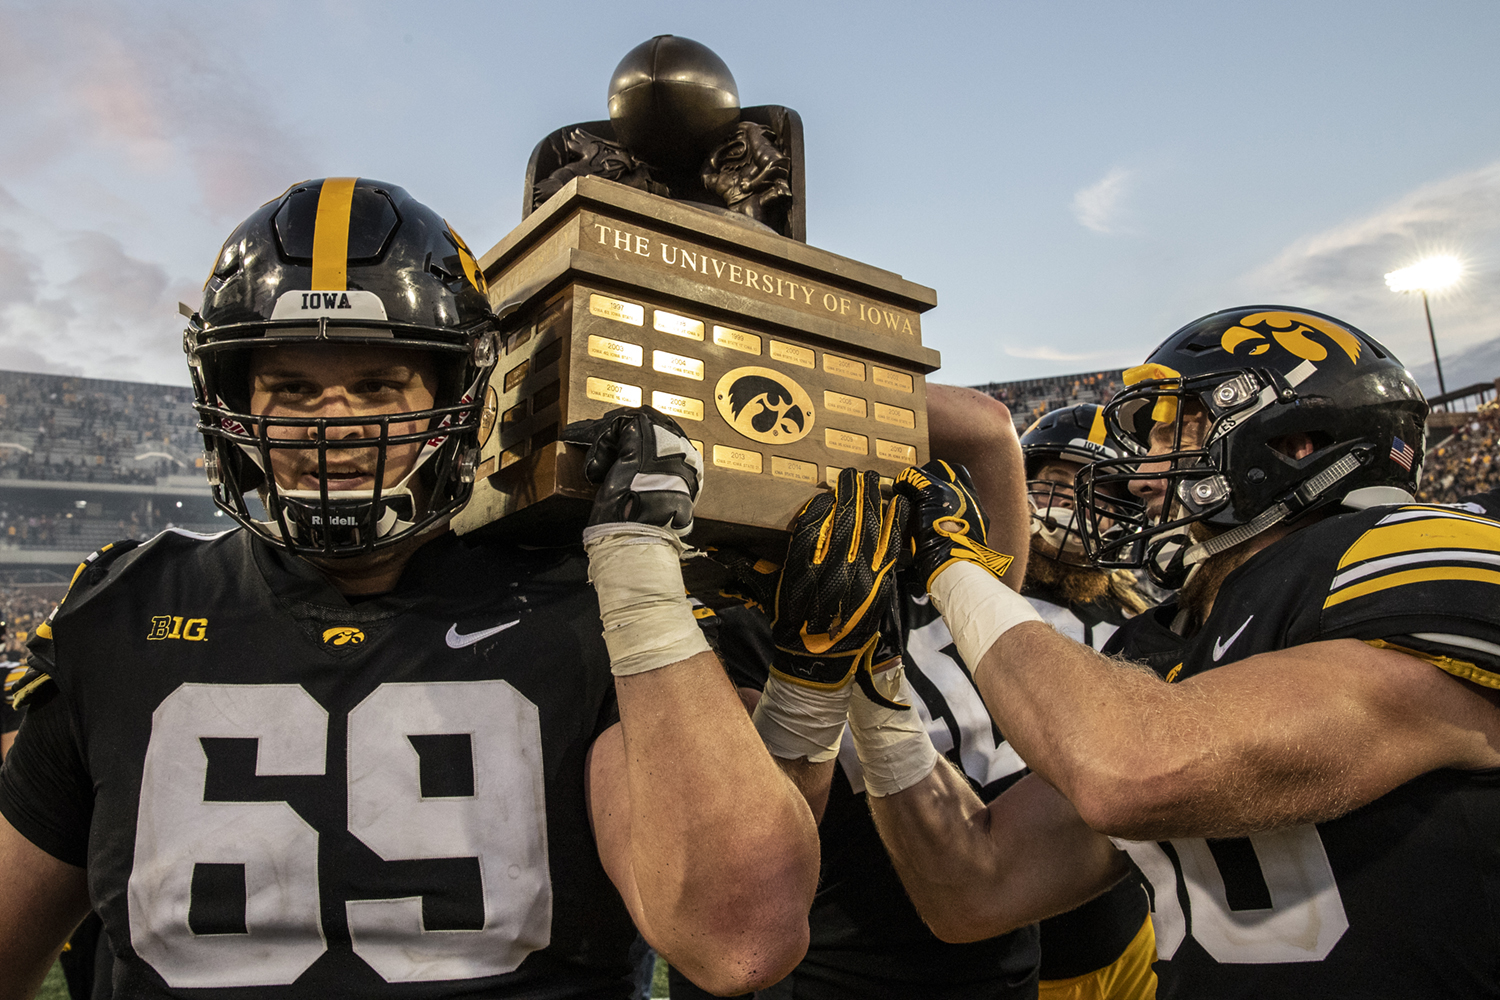 Iowa center Keegan Render and teammates carry the Cy-Hawk trophy off the field after Iowa's game against Iowa State at Kinnick Stadium on Saturday, Sept. 8, 2018. The Hawkeyes defeated the cyclones 13-3.